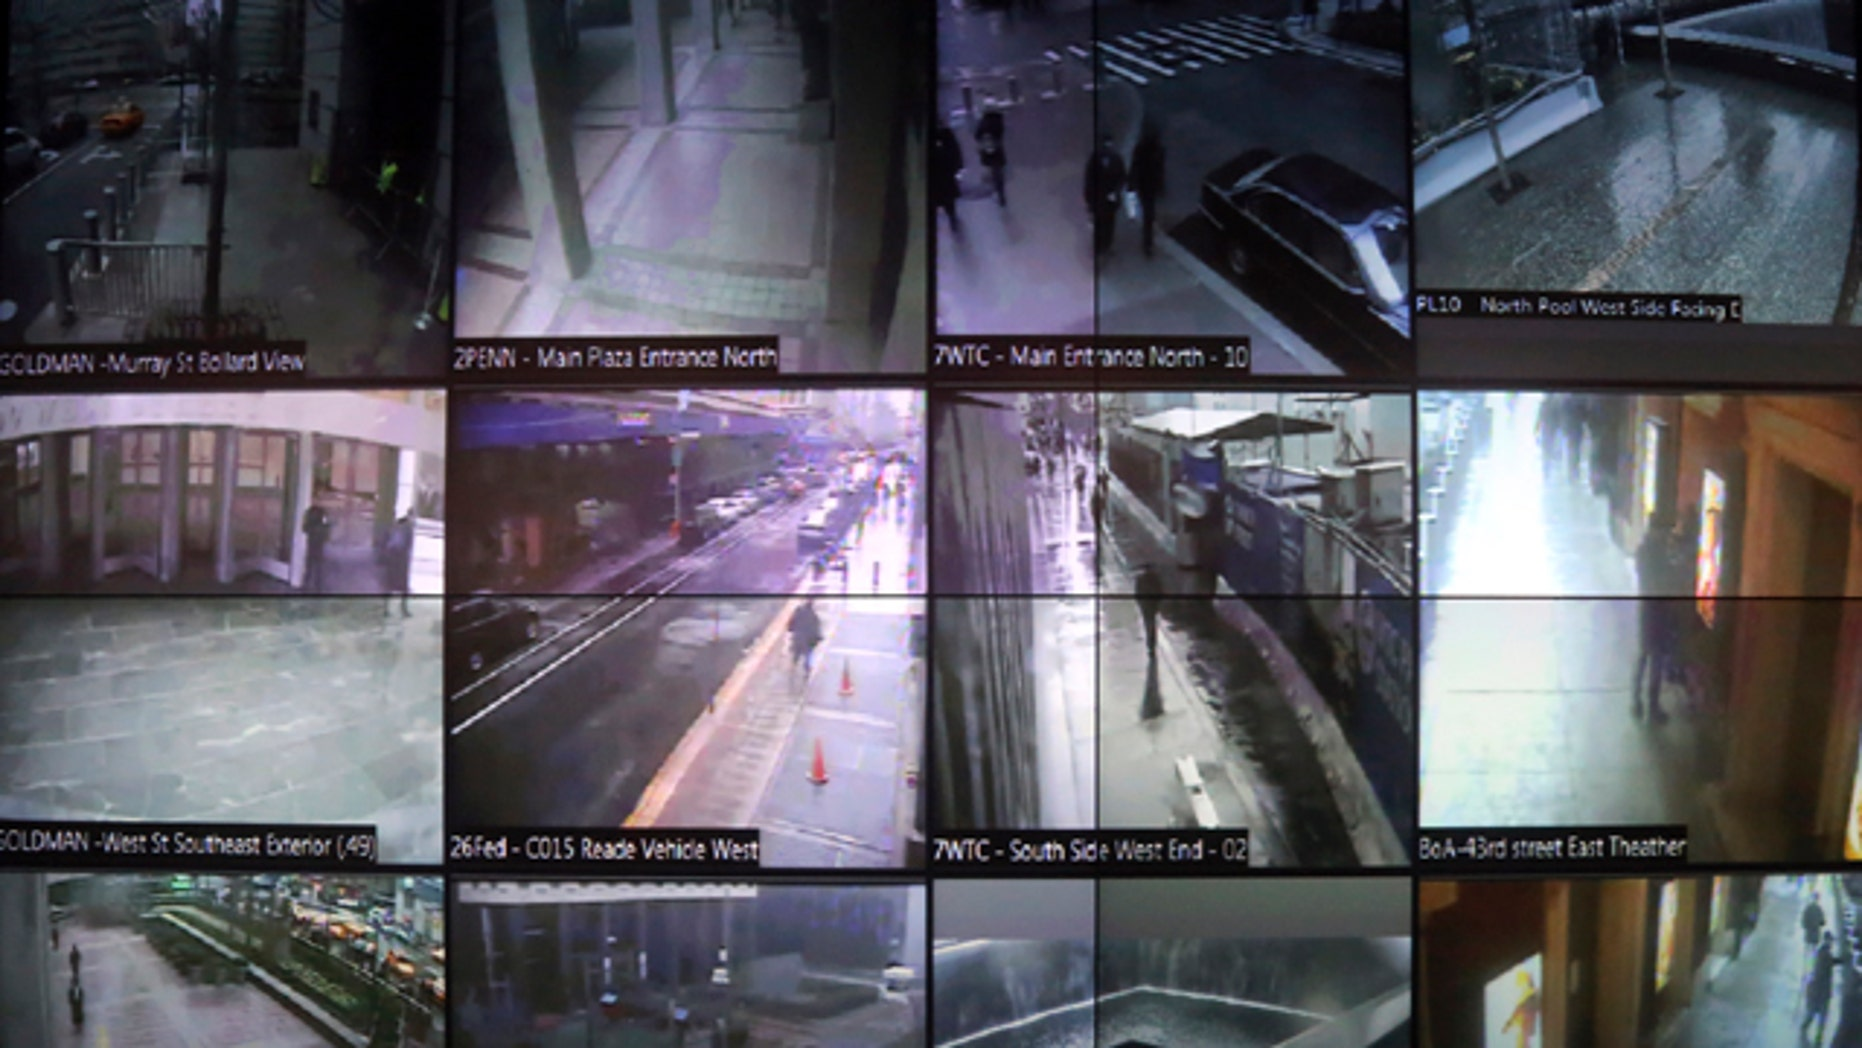 Feb. 19, 2013: A detail of a video wall that shows New York city police officers an interactive map of the area, security footage from nearby cameras, locations where high radiation levels are detected and whether any other threats have been made in New York.